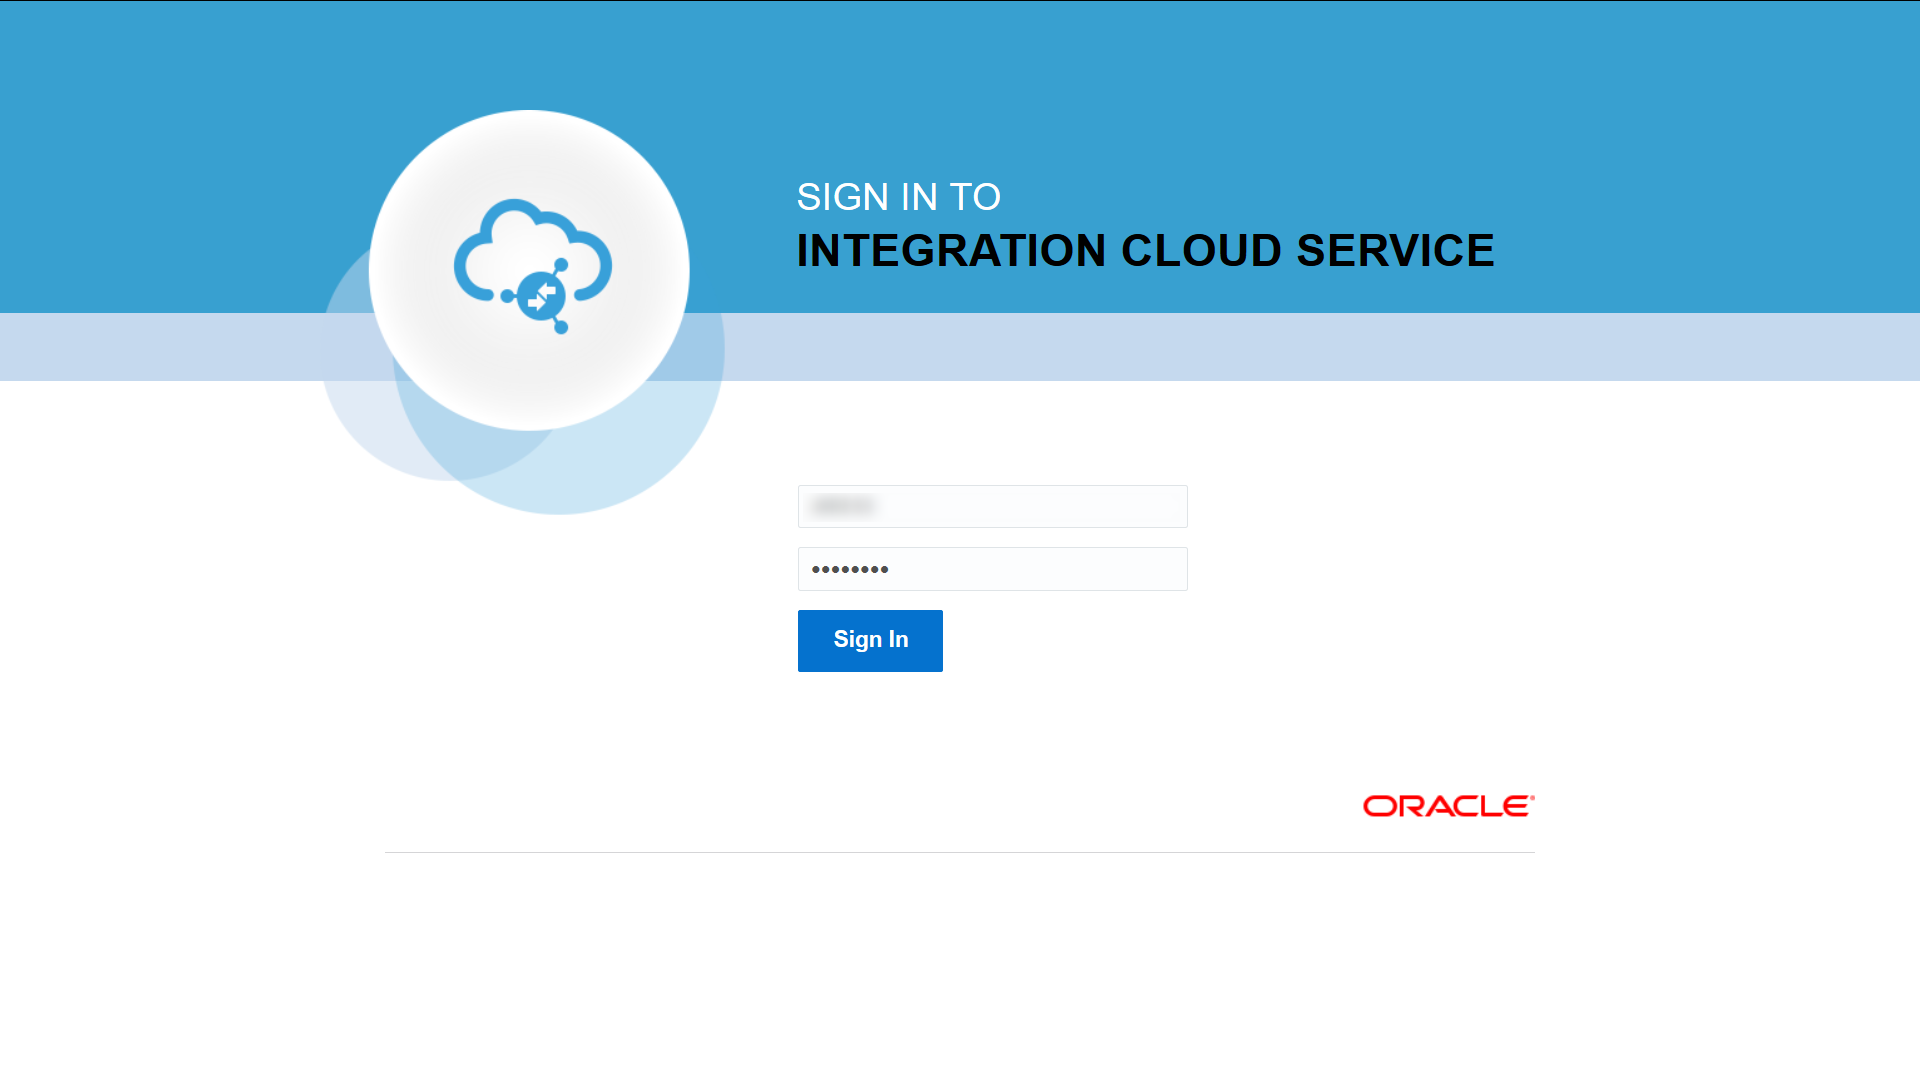 Introducing the Integration Cloud Service